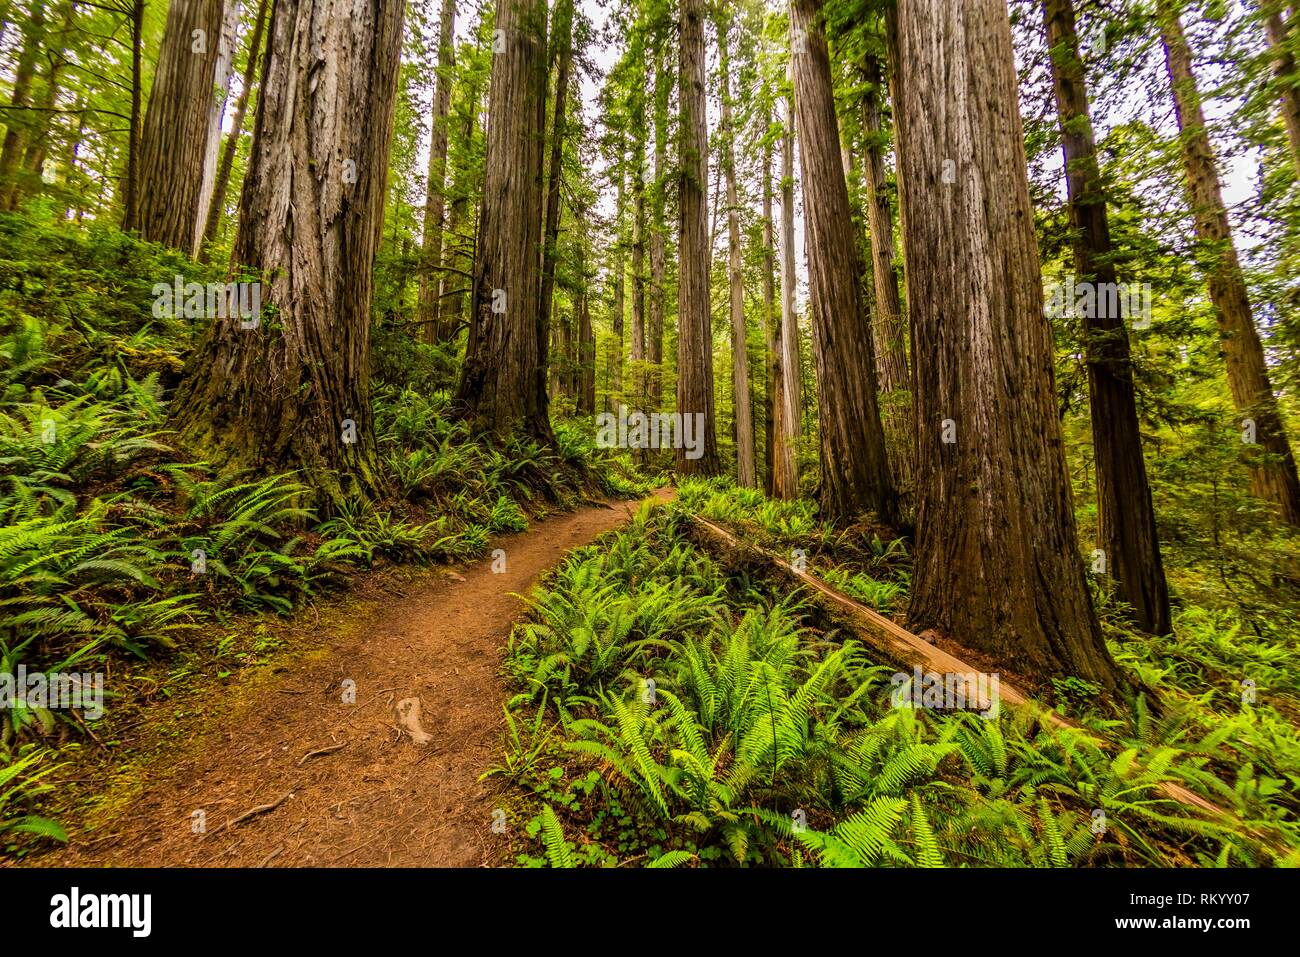 Hiking through a massive redwood forest on Boy Scout Trail, in Jedediah Smith Redwoods State Park, part of Redwood National and State Parks, northern - Stock Image